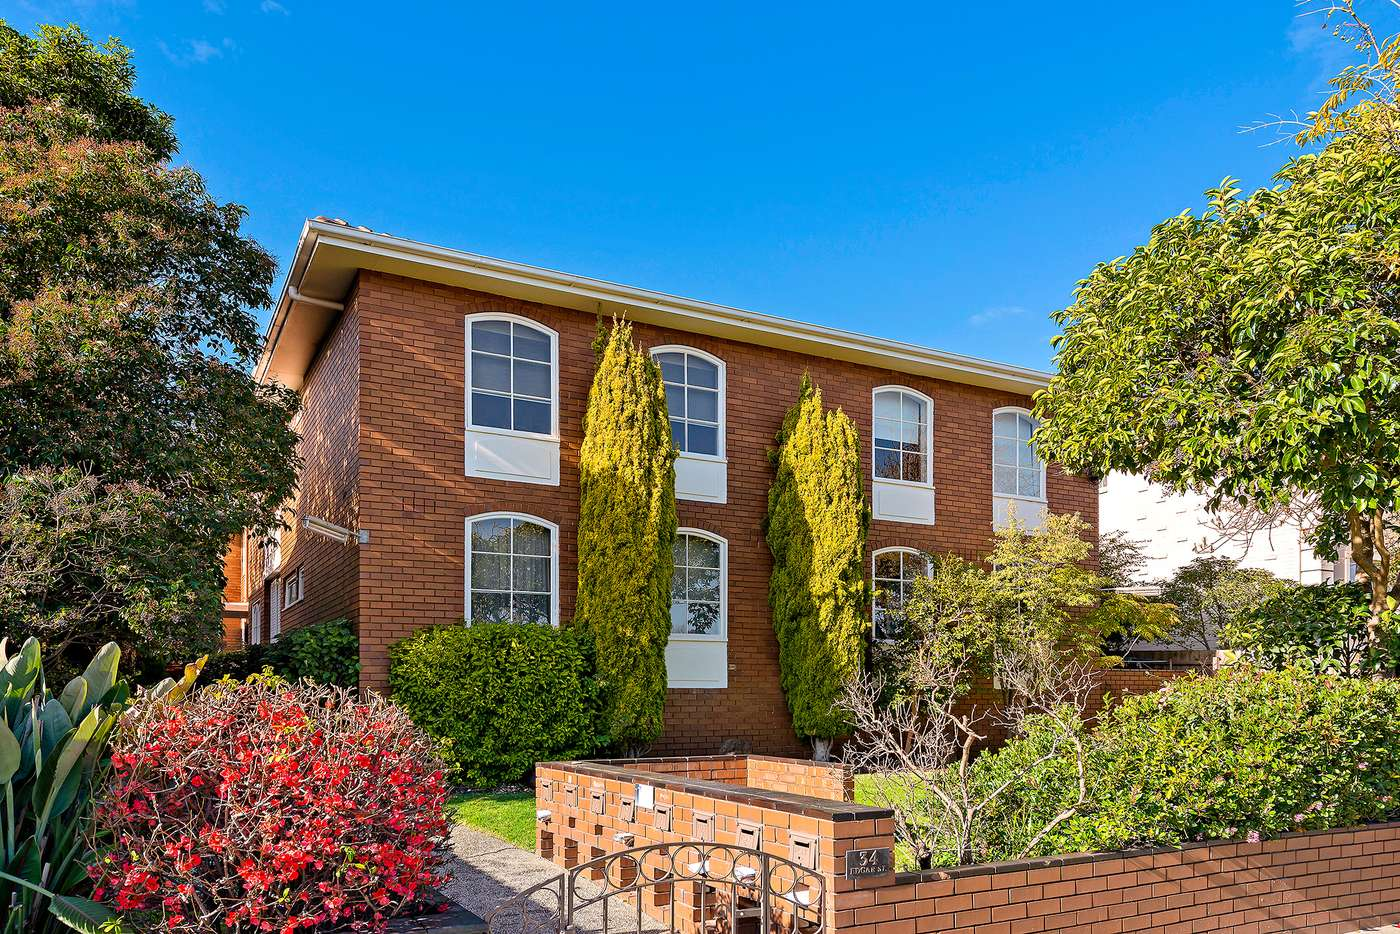 Main view of Homely apartment listing, 5/34 Edgar Street, Glen Iris VIC 3146